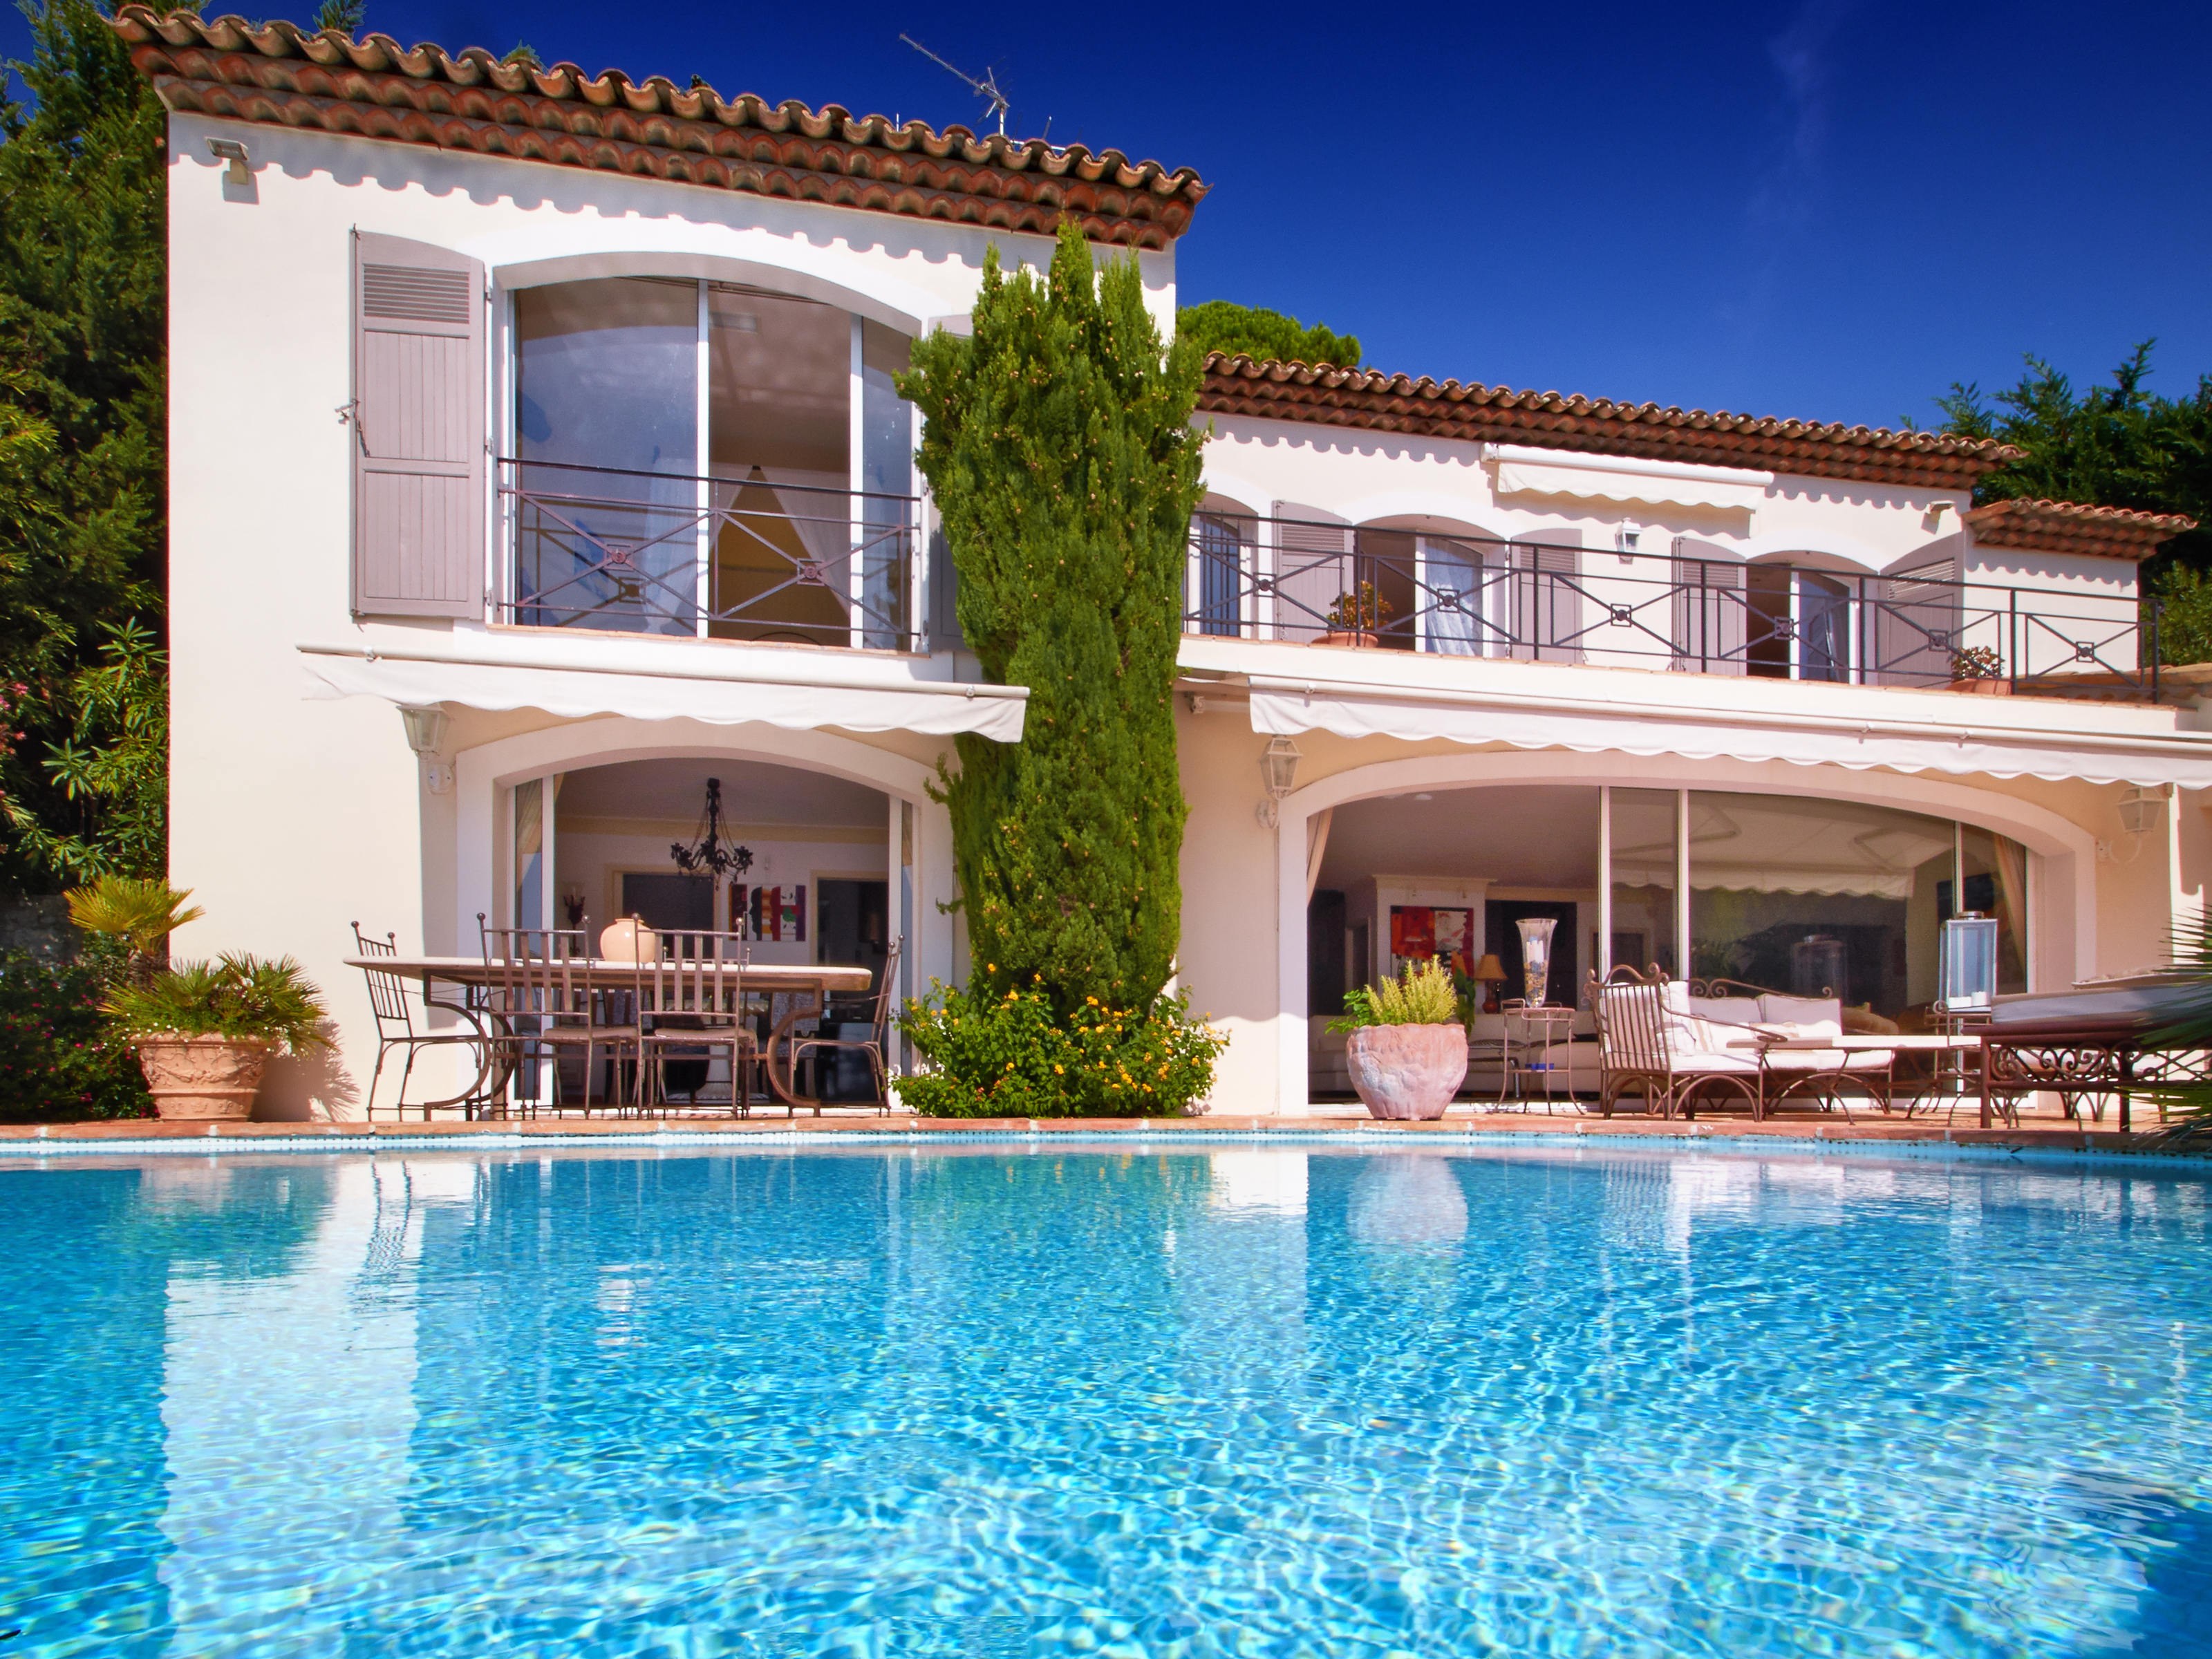 Single Family Home for Sale at Villa with panoramic sea view in Mougins village Mougins, Provence-Alpes-Cote D'Azur 06250 France